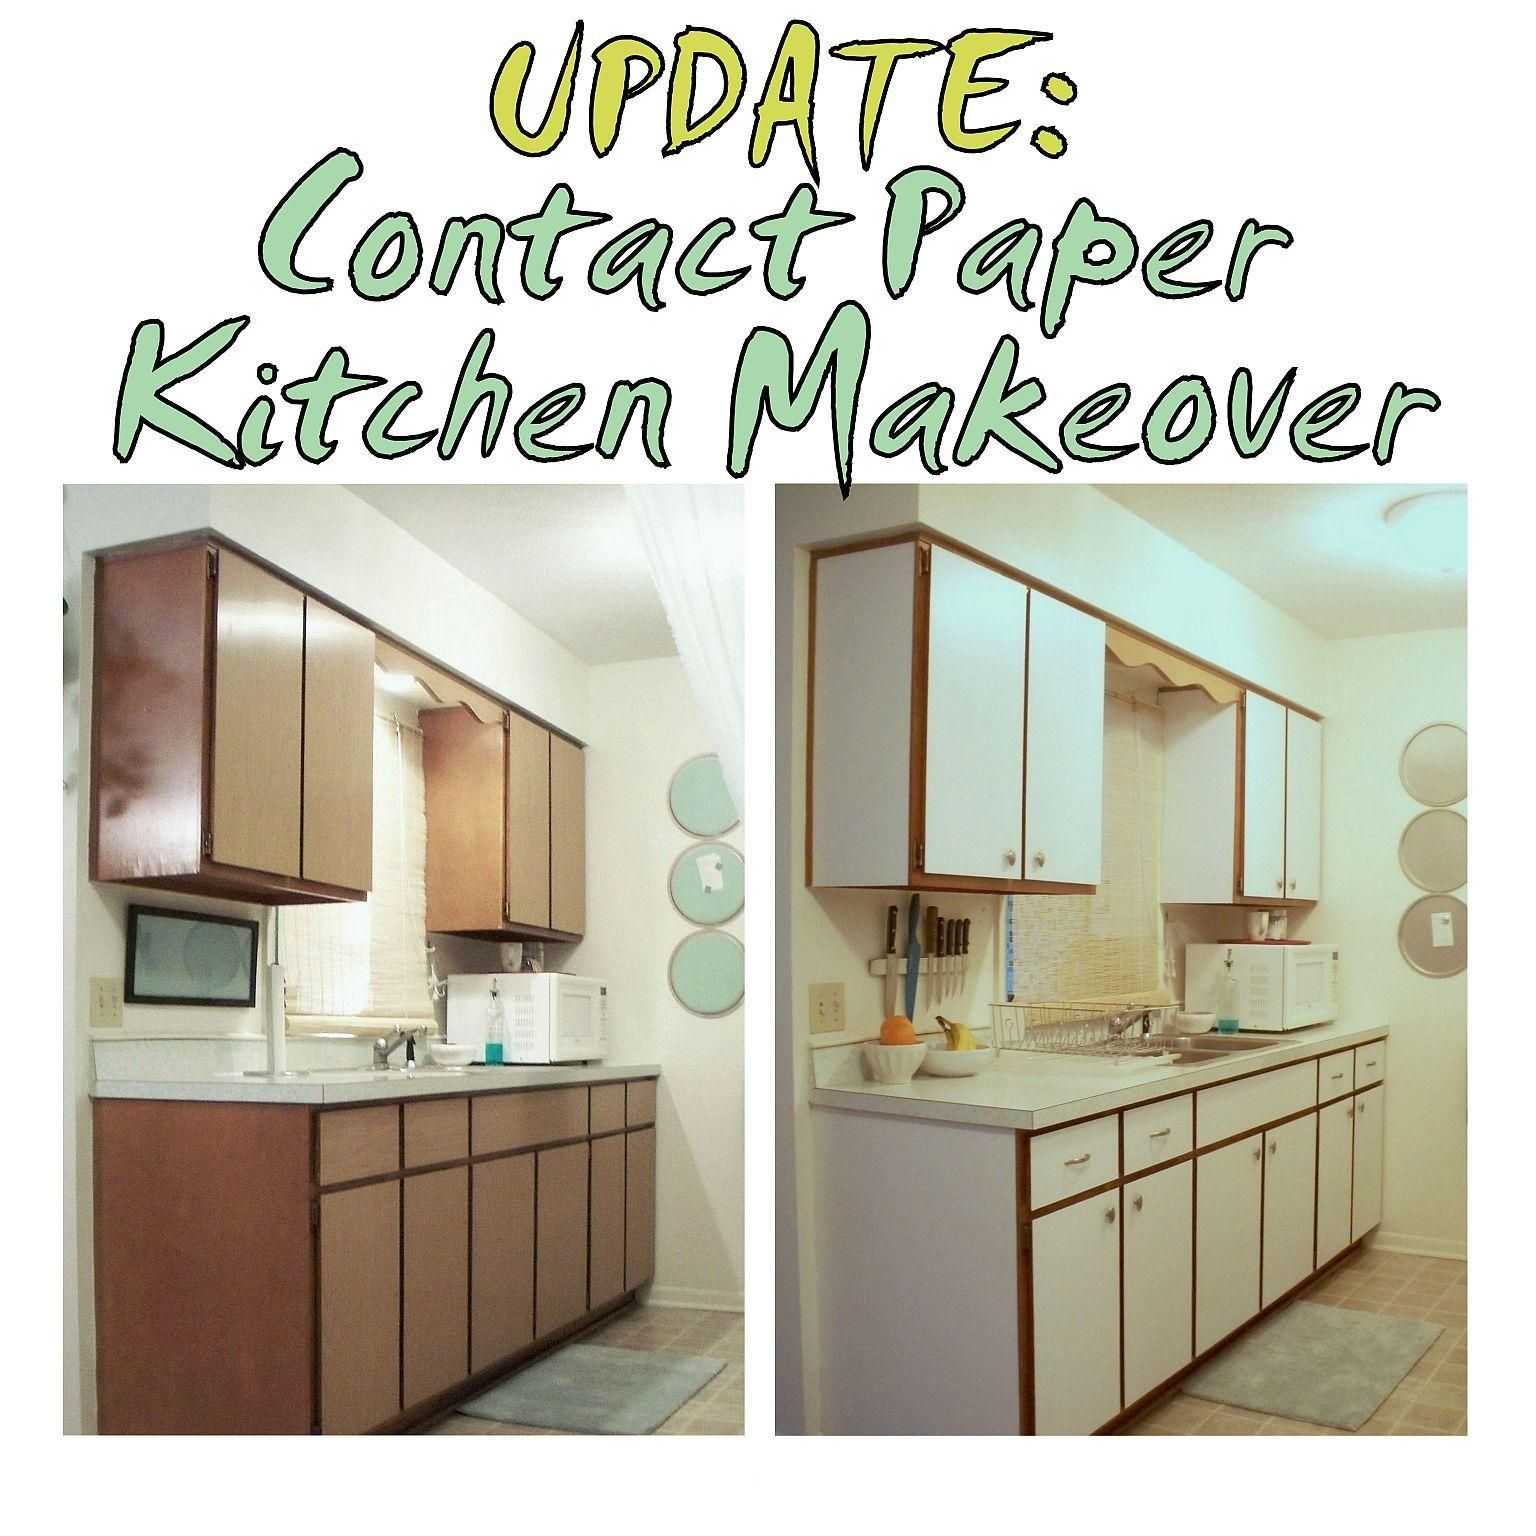 Covering Kitchen Cabinets With Contact Paper Apartment Decorating Rental Rental Kitchen Makeover Rental Kitchen